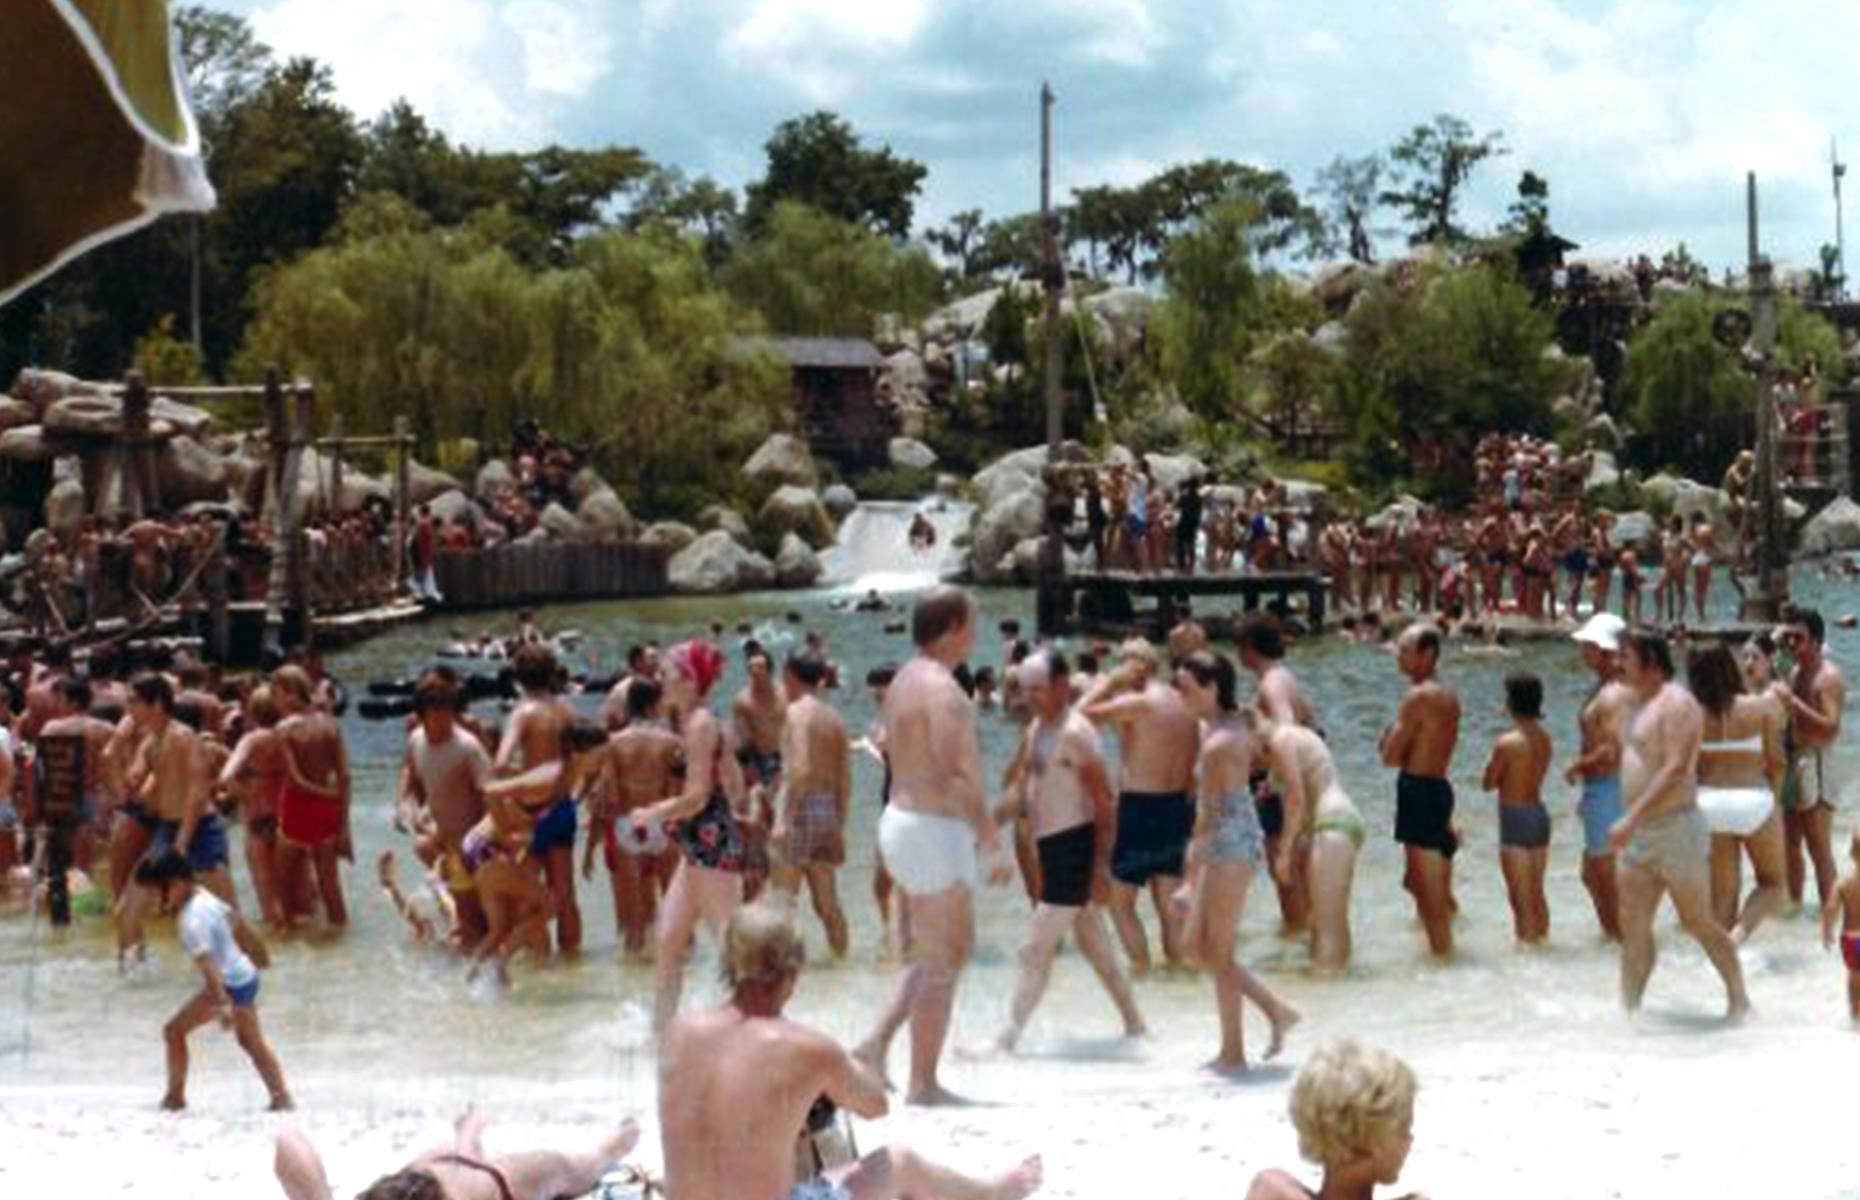 Slide 24 of 31: The creepy remains of Disney's River County still exist in Florida's Bay Lake (pictured here in 1977). Walt Disney World Resort's earliest water park opened in 1976, drawing visitors in their thousands with its slides rushing over rocks and its large swimming hole. The park was well-loved over the decades, but a handful of tragedies were linked to the site: two children died from drowning in the 1980s and another from a fatal amoebic infection contracted from the water.